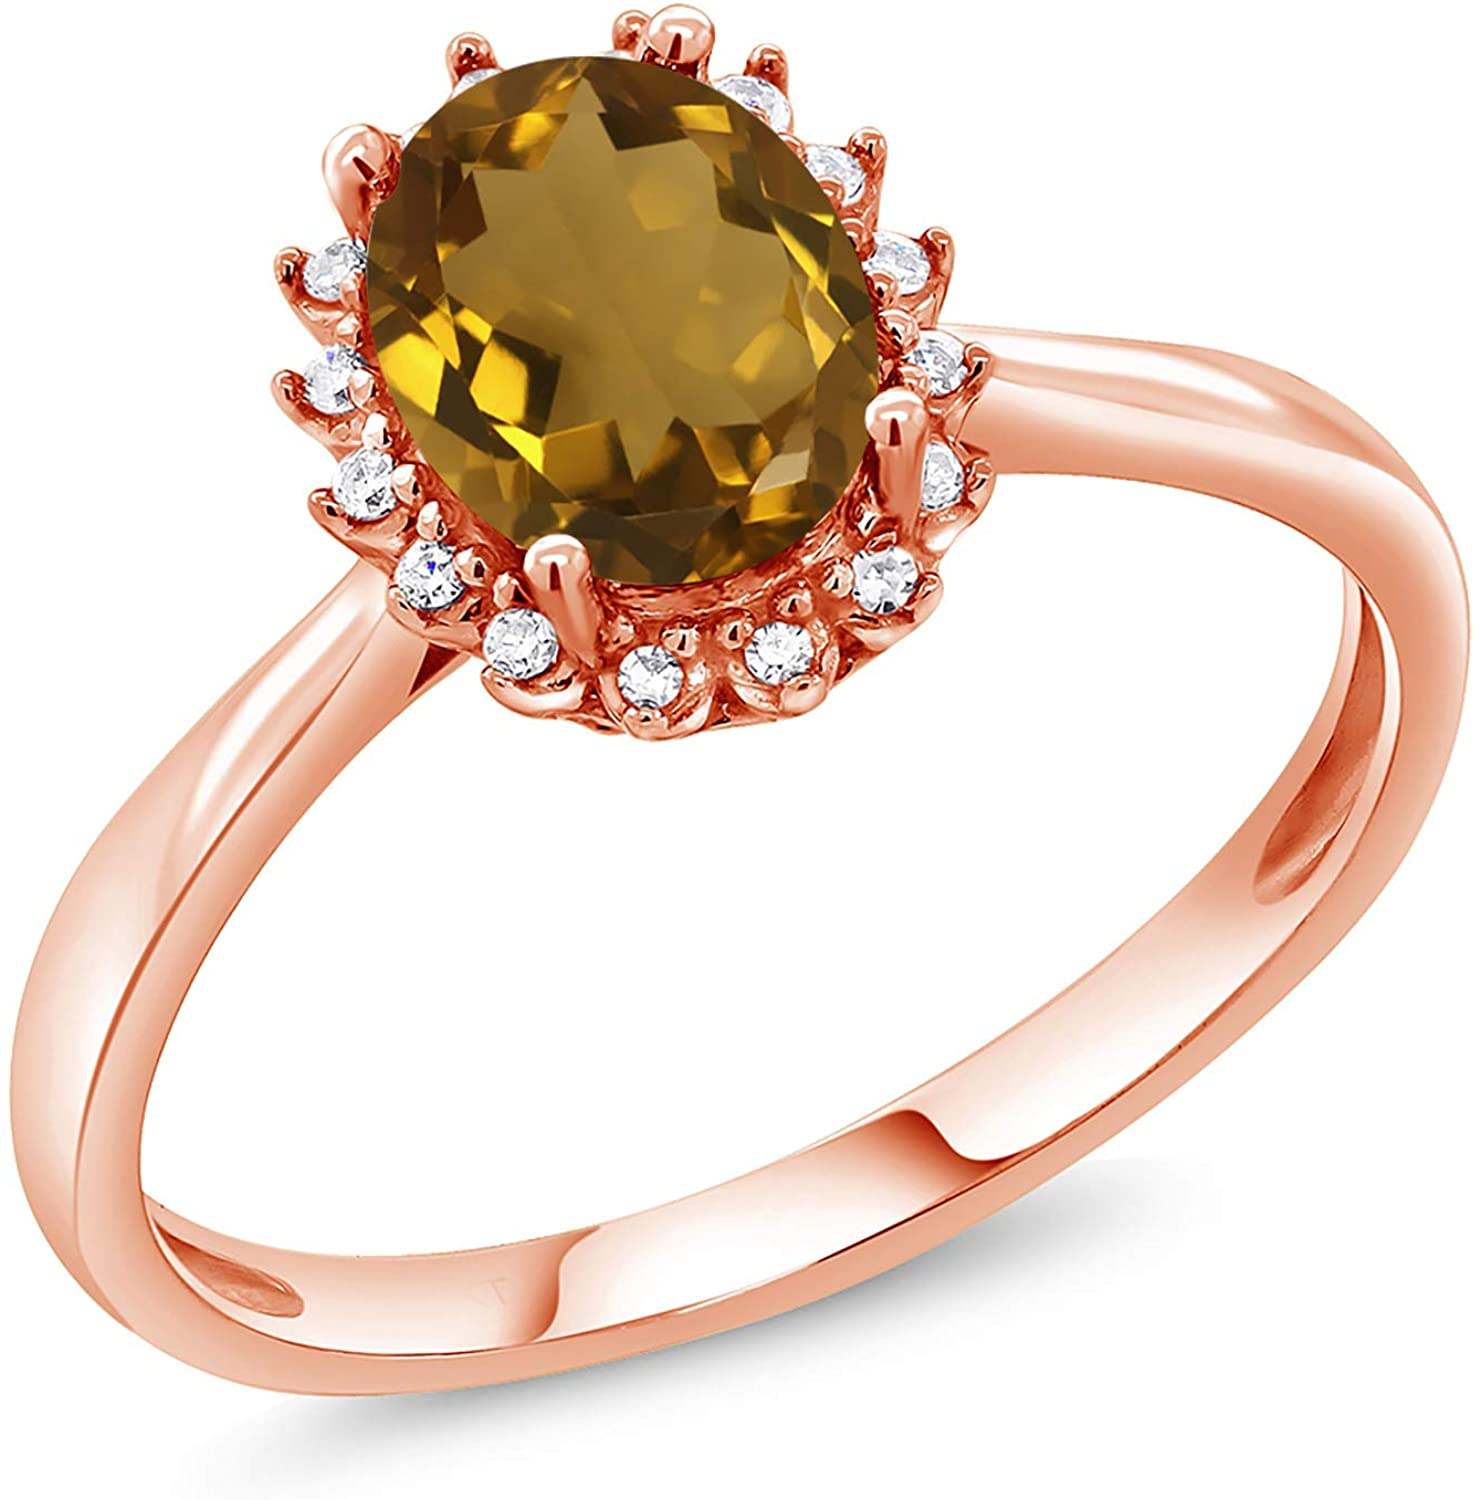 Gem Stone King 1.00 Ct Oval Whiskey Quartz 10K Rose Gold Ring with Diamond Accent (Available 5,6,7,8,9)